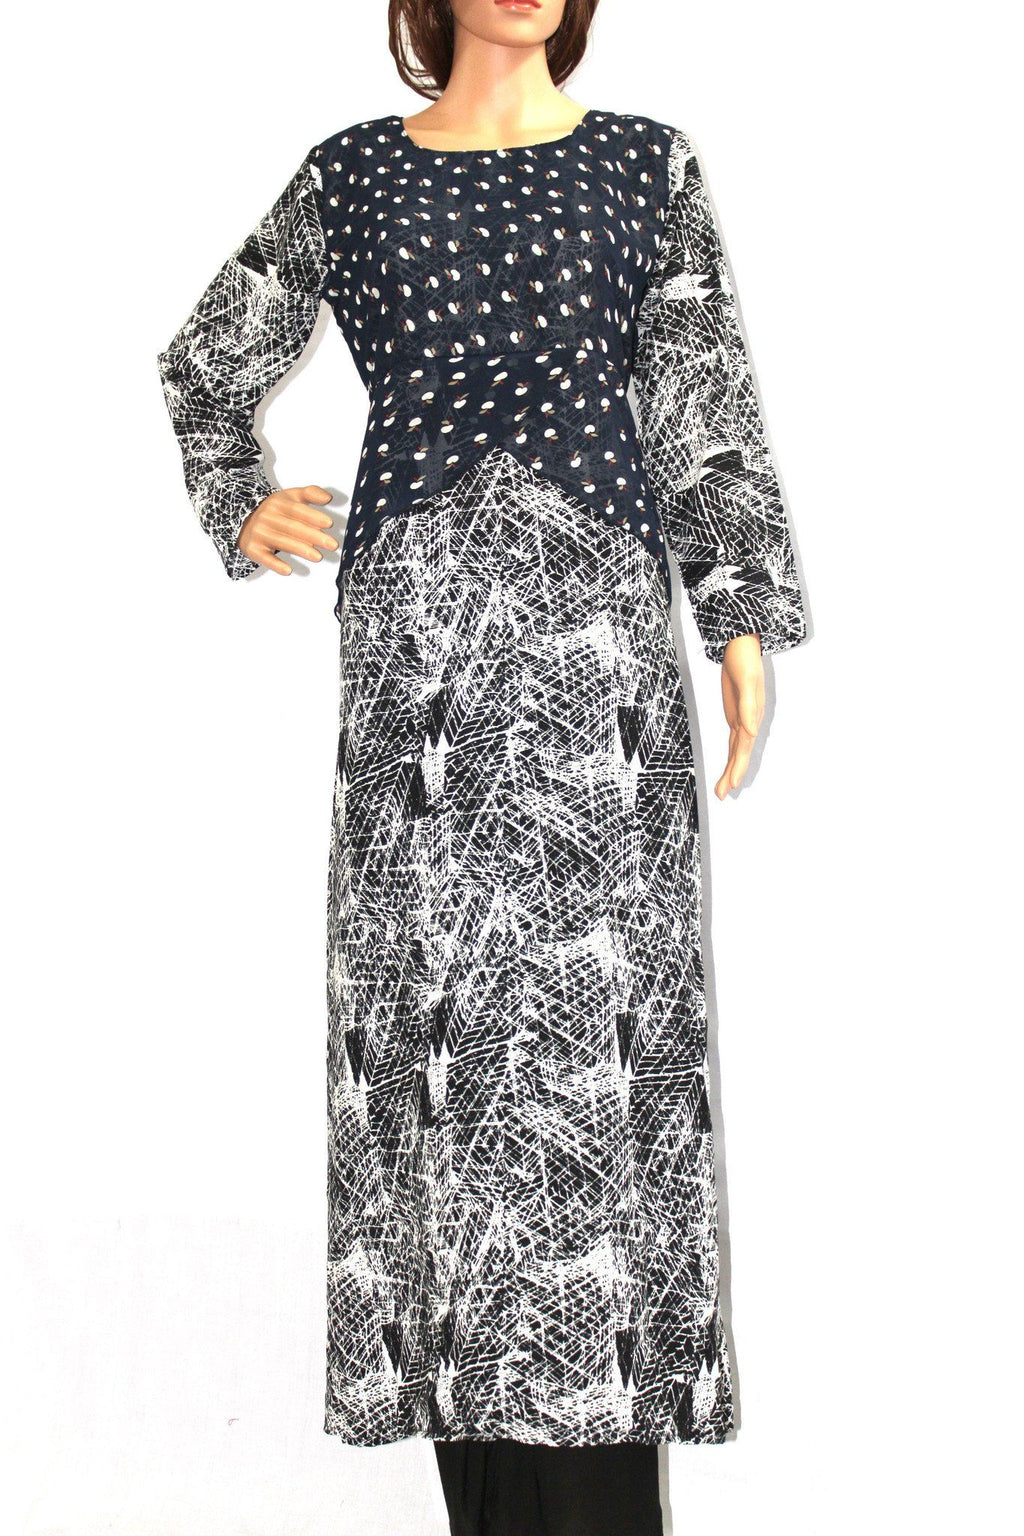 Long Dress (LD-0013)